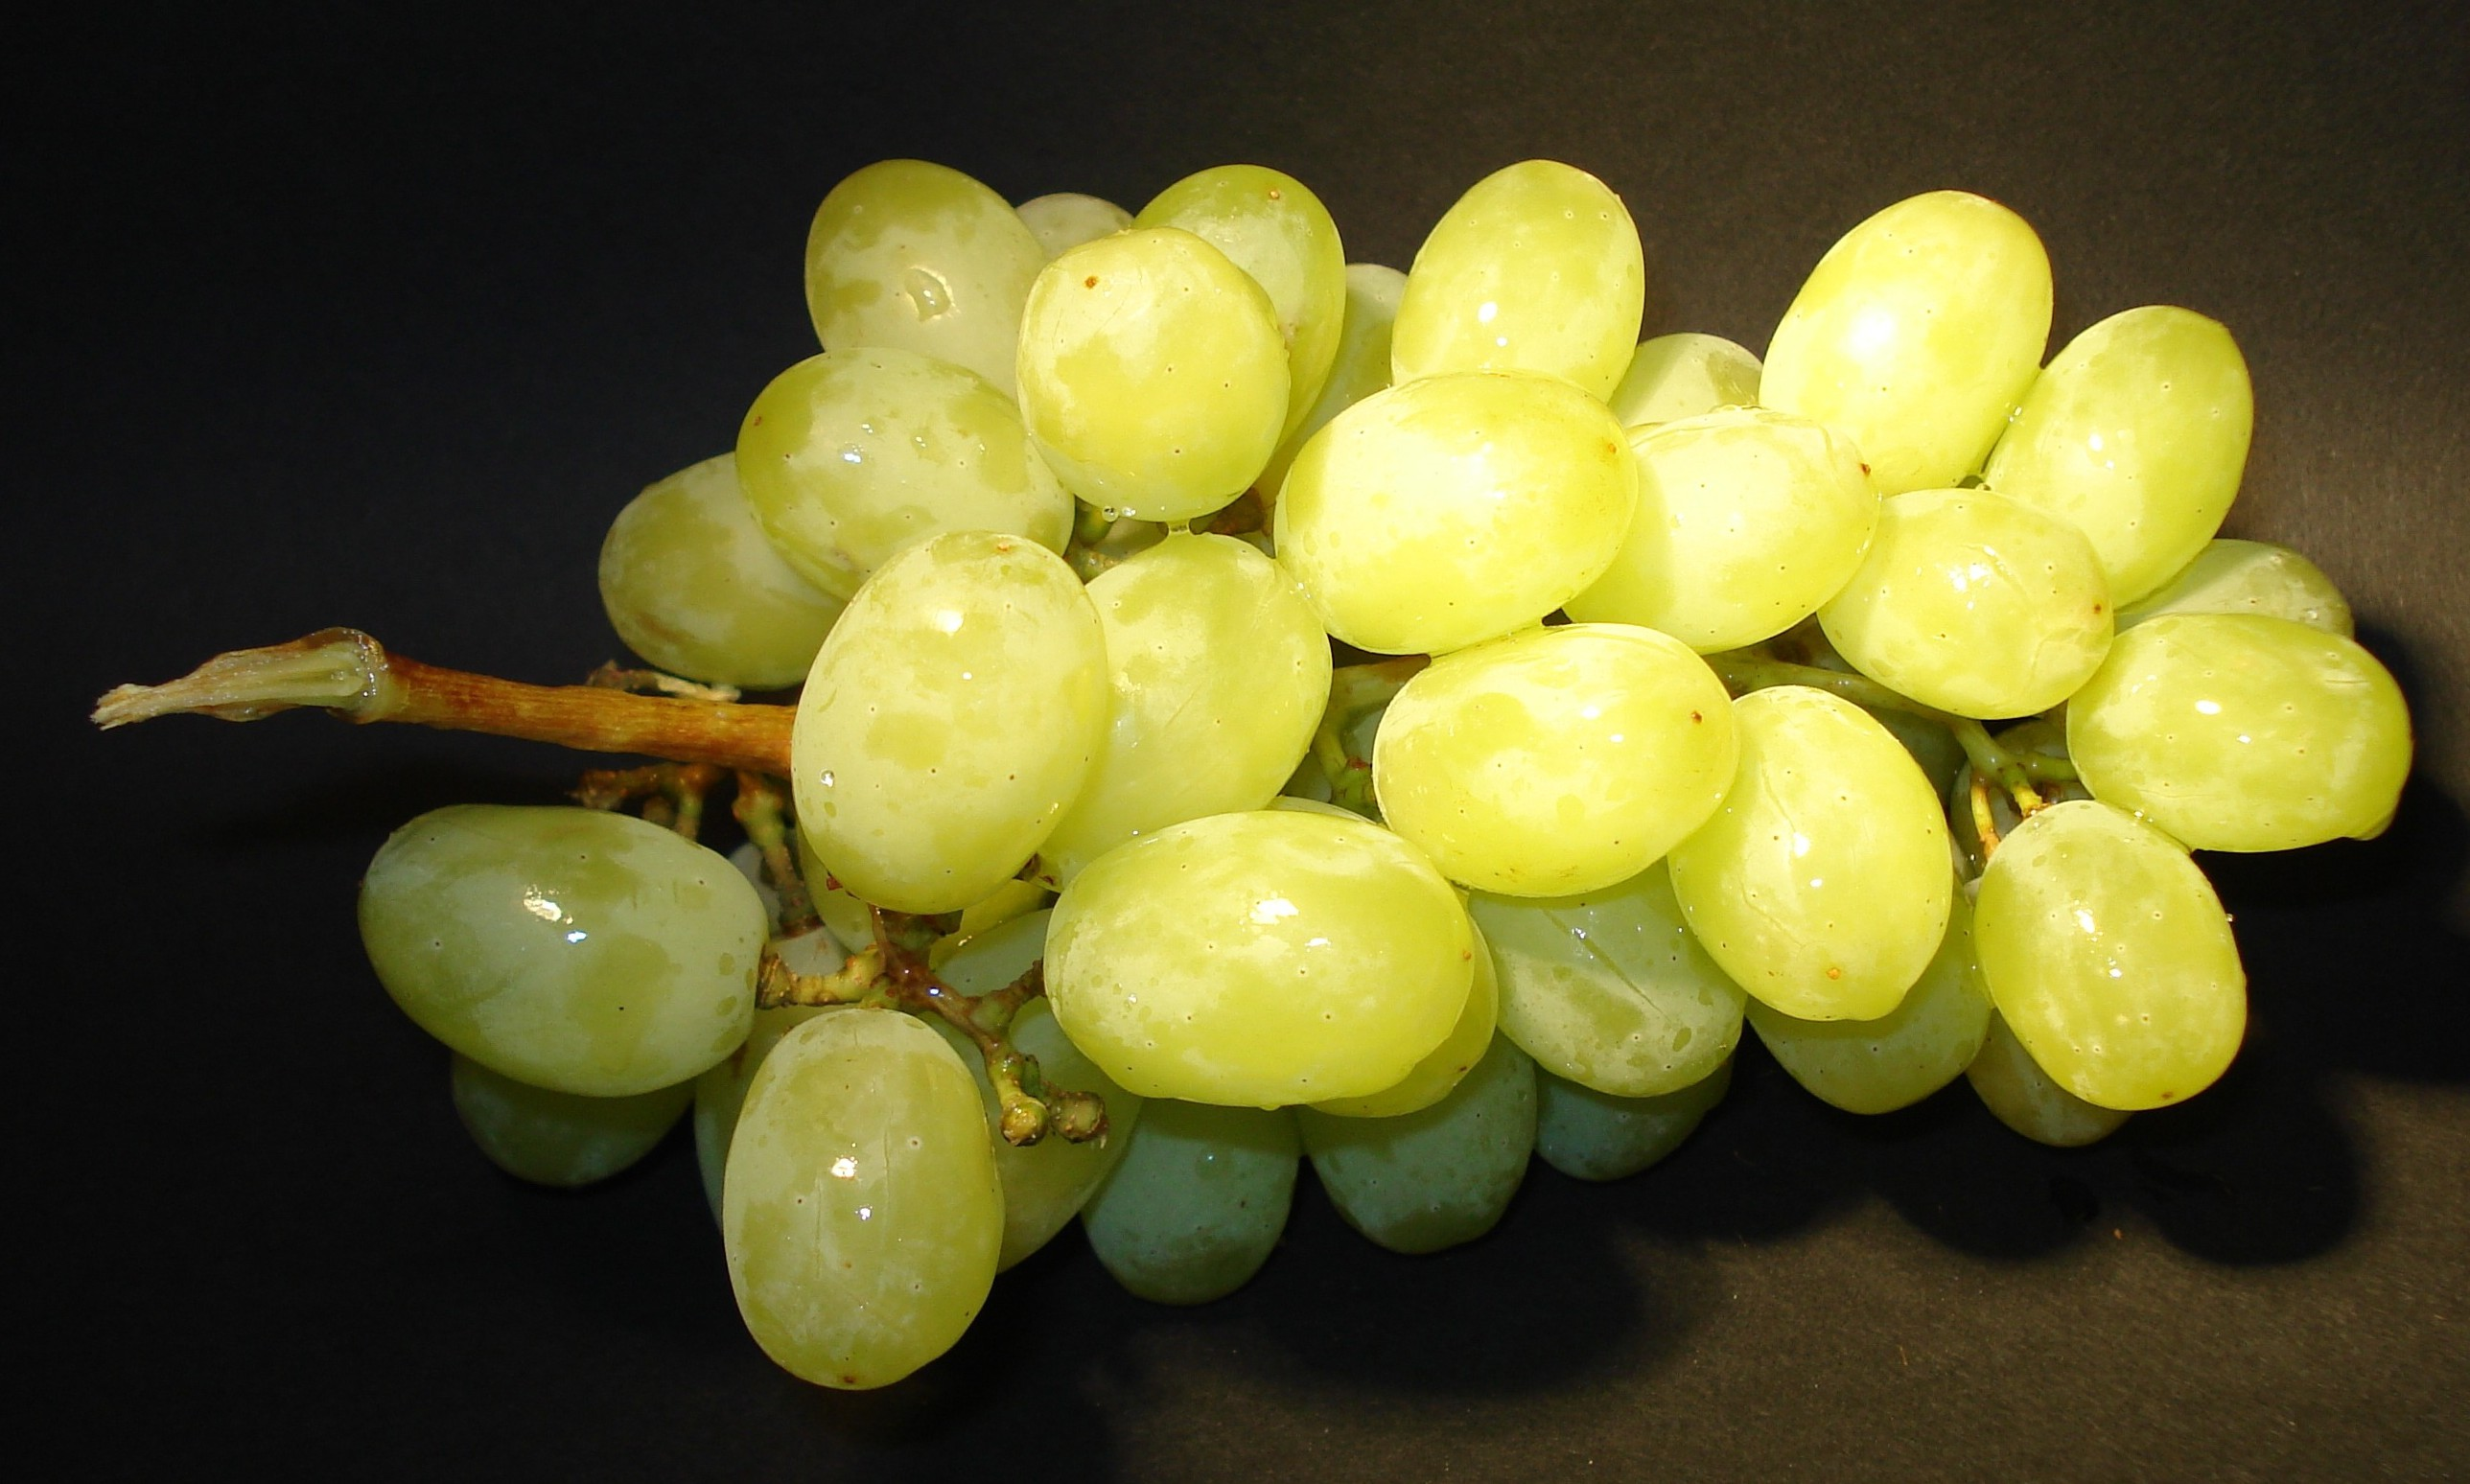 Climate has effect on southern hemisphere grapes